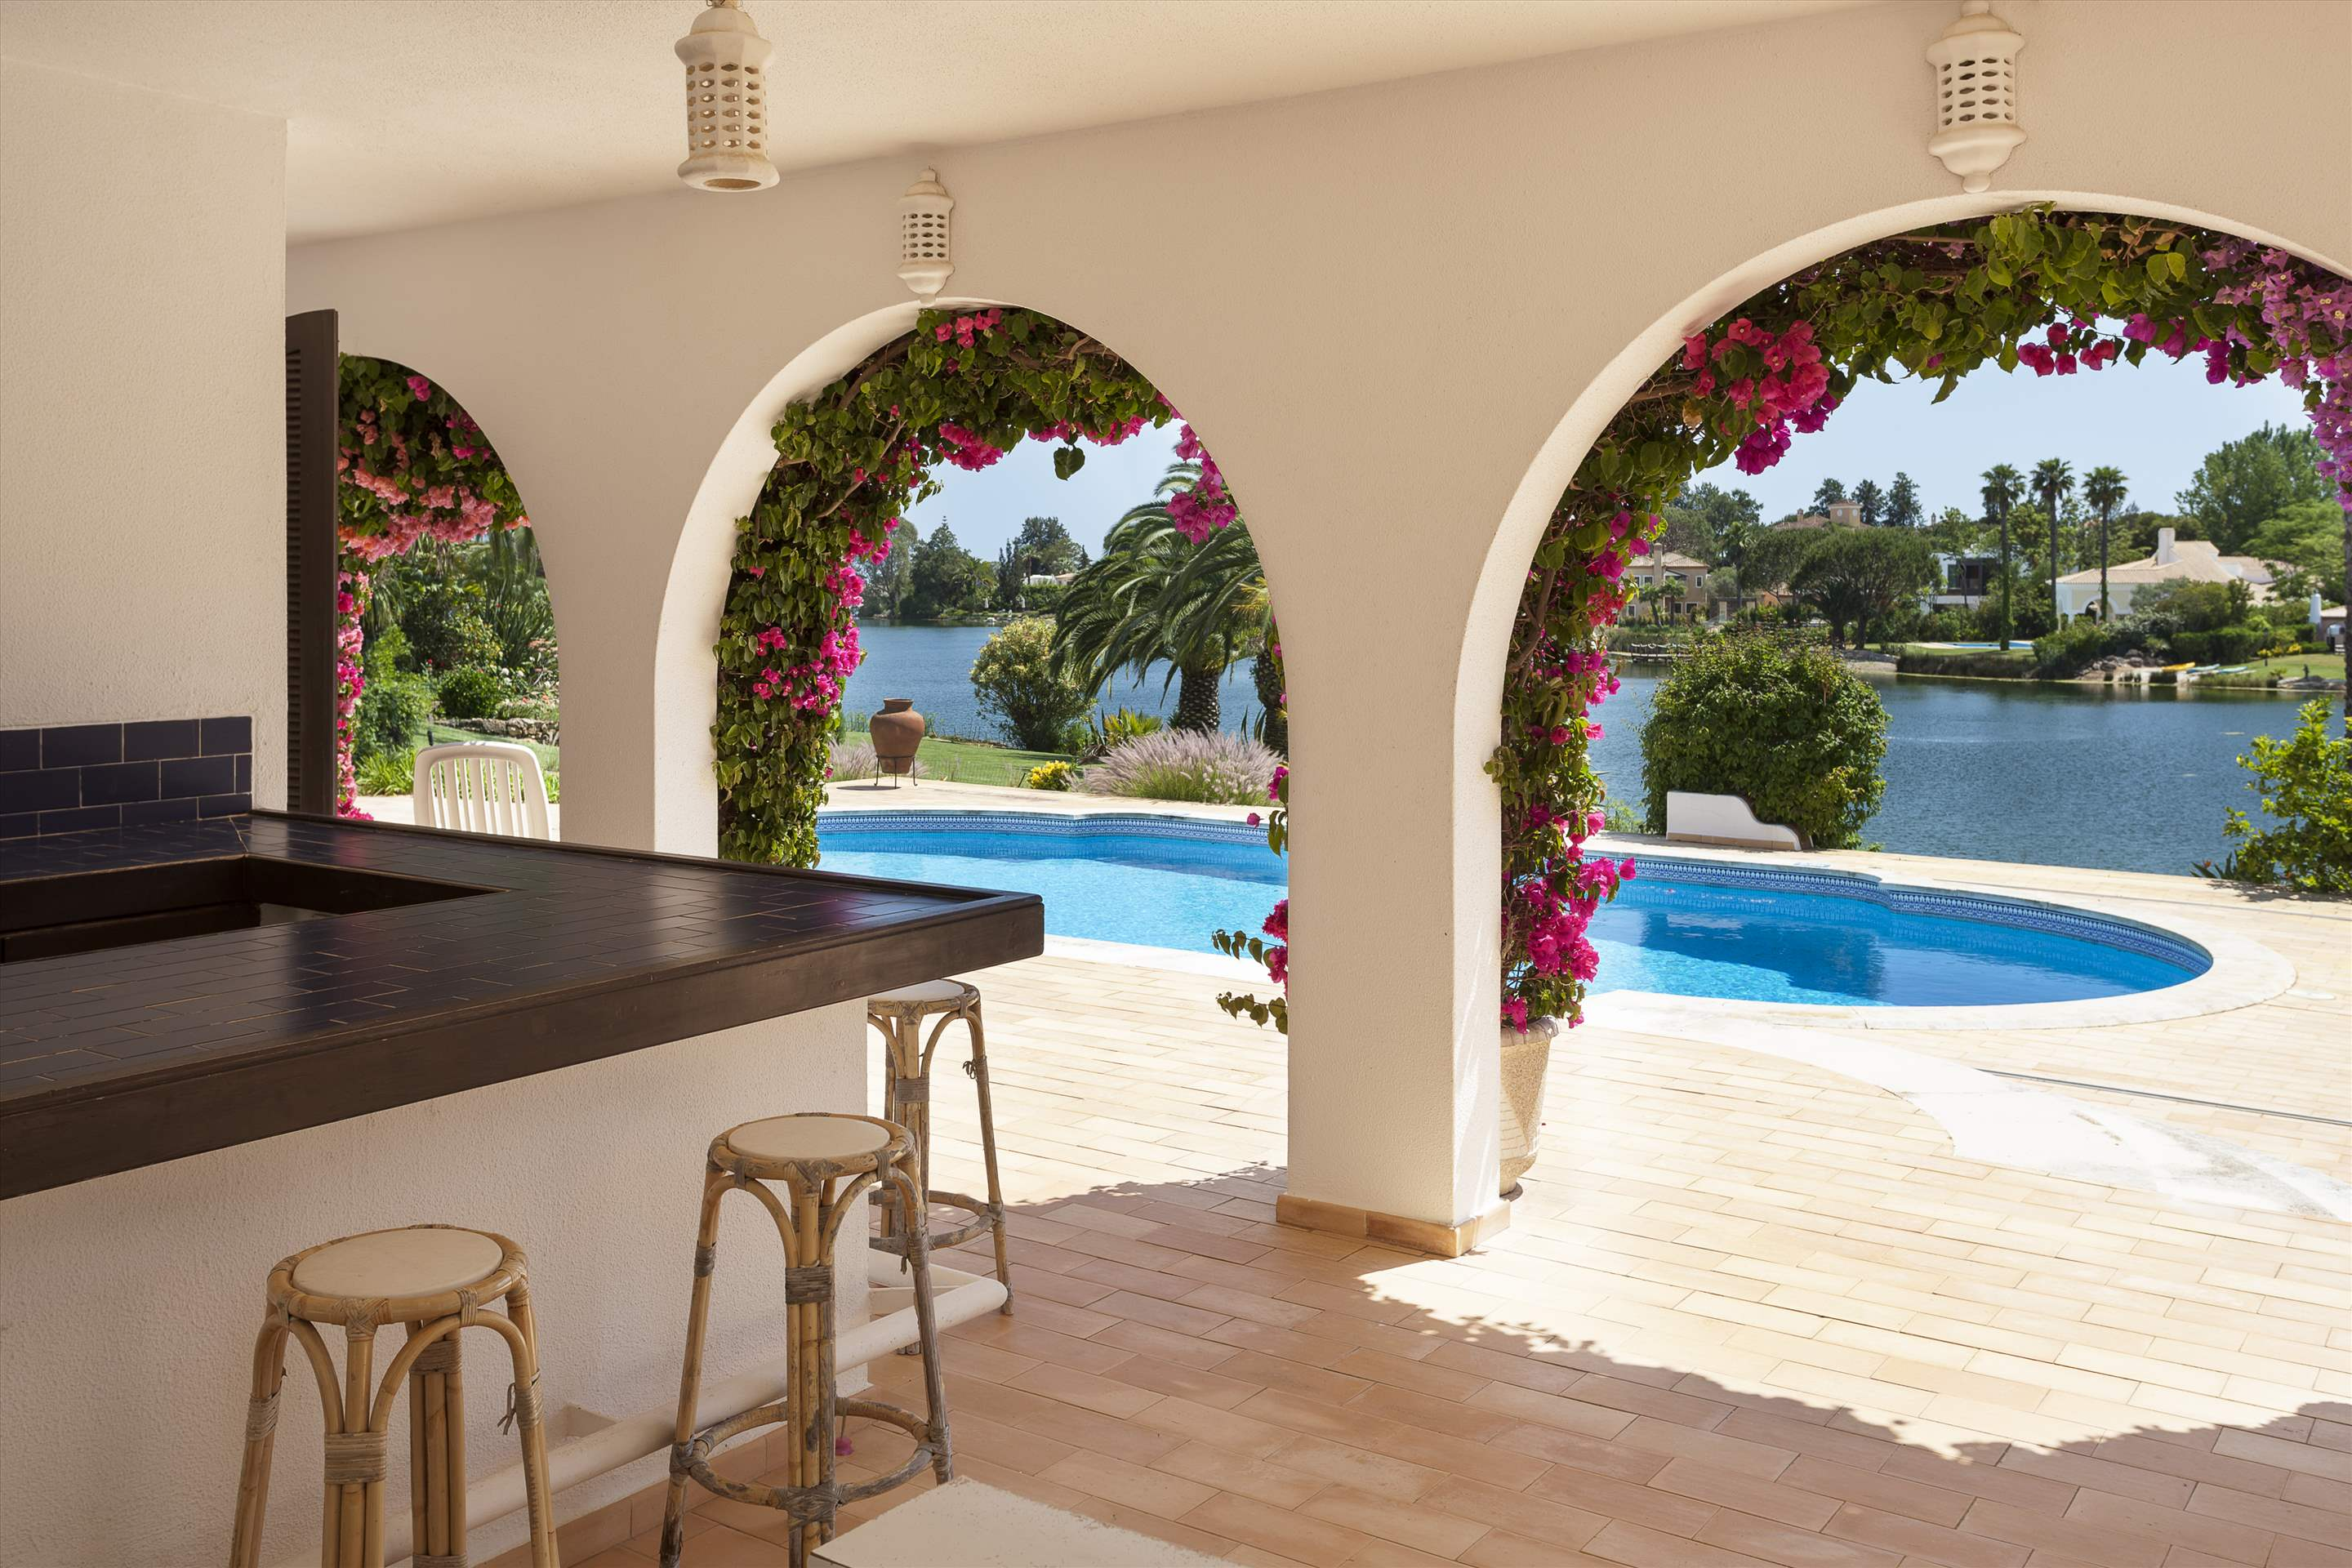 Villa Lake View, 4 bedroom villa in Quinta do Lago, Algarve Photo #8